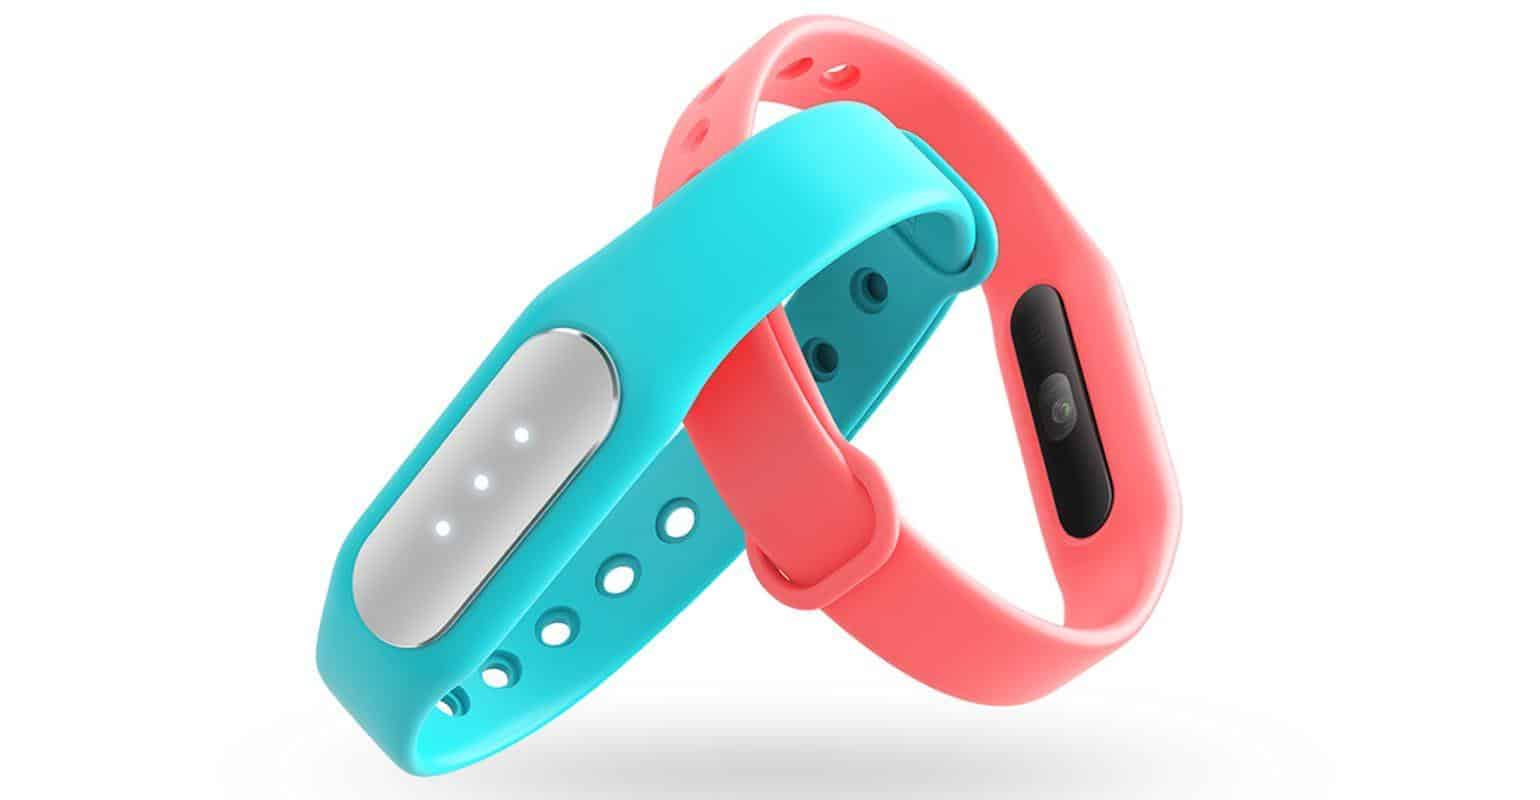 xiaomi mi band 1s pulse goedkope wearable met hartslagmeter. Black Bedroom Furniture Sets. Home Design Ideas